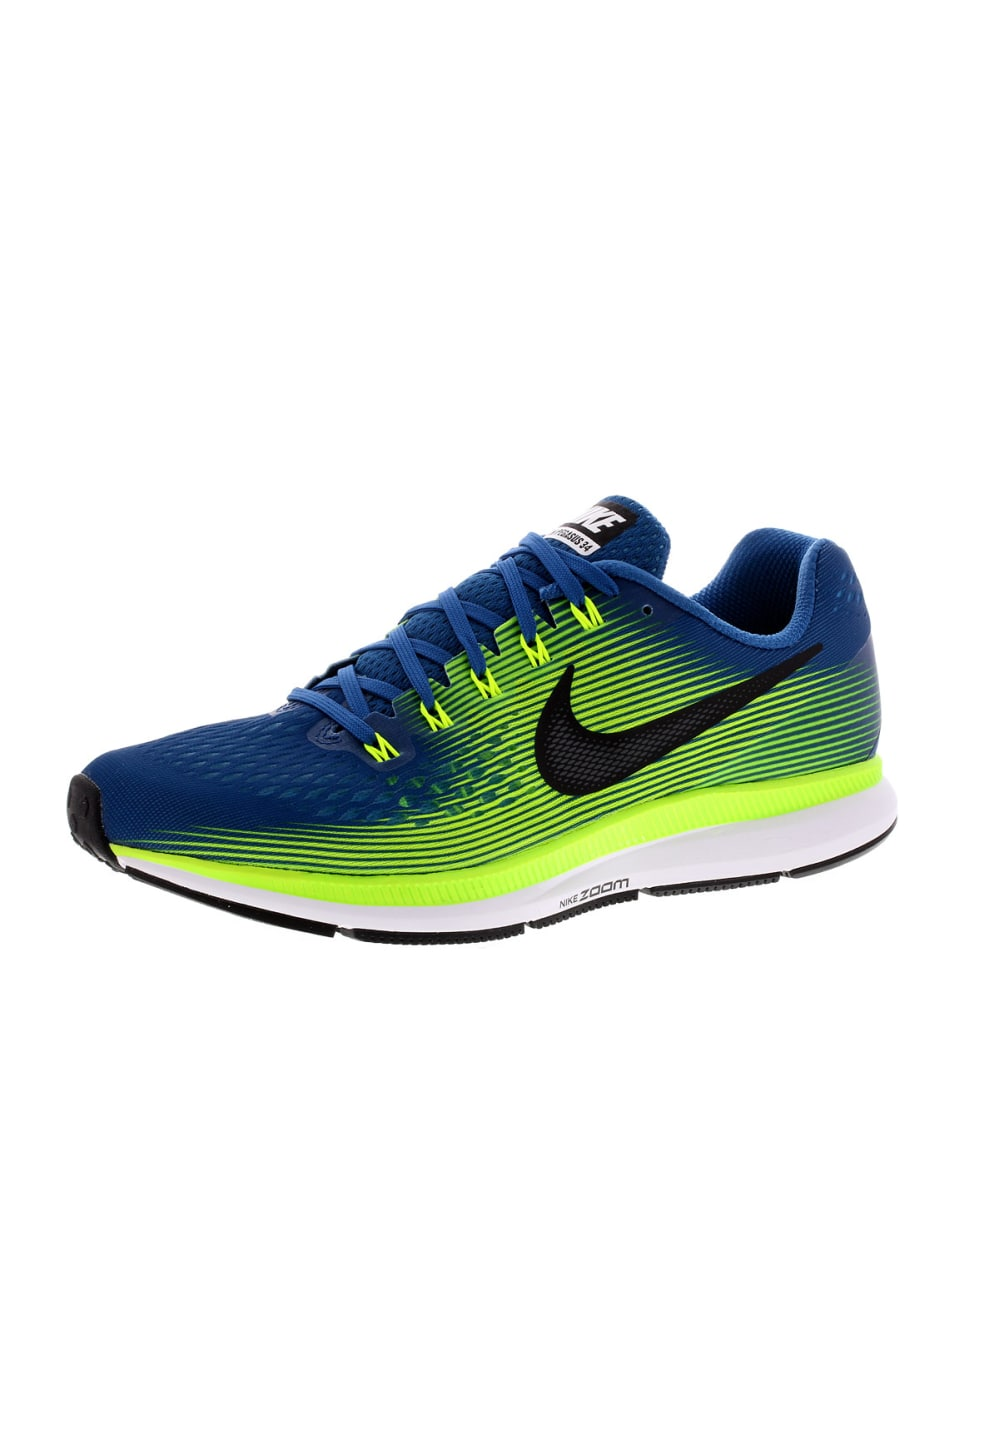 c74338f6aa0 Nike Air Zoom Pegasus 34 - Running shoes for Men - Blue